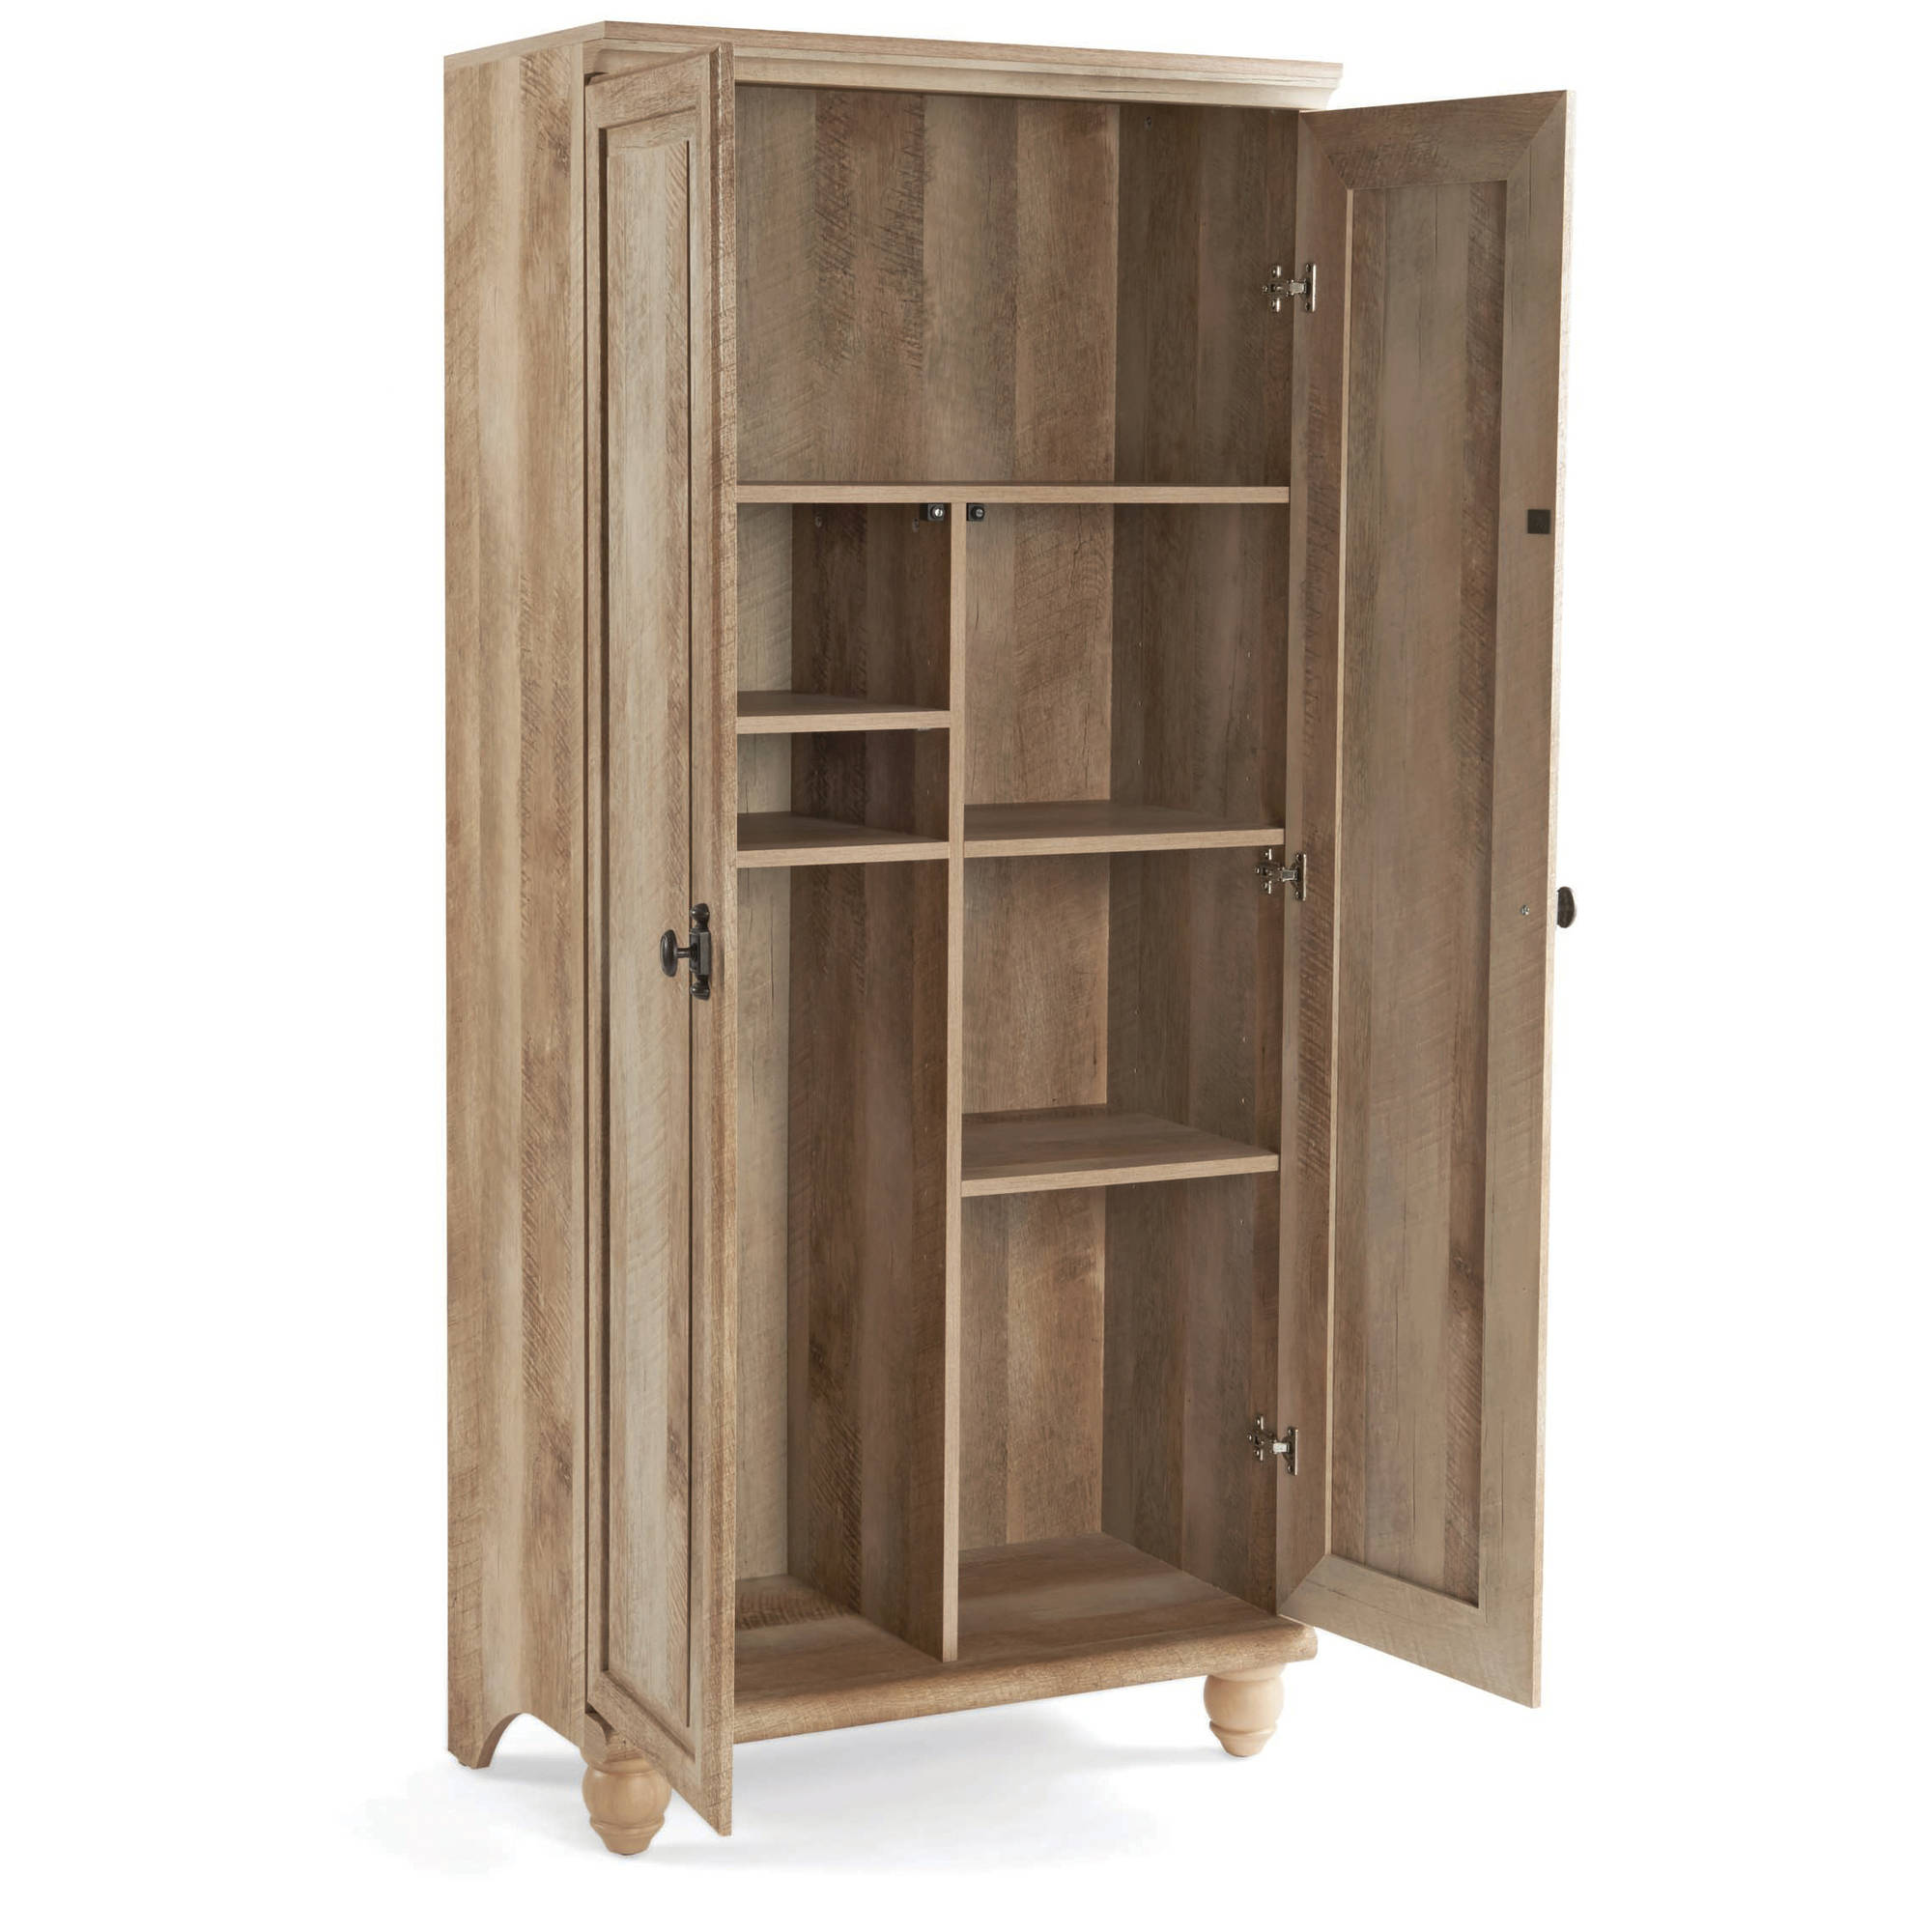 Storage Appealing Interior Storage Design With Walmart